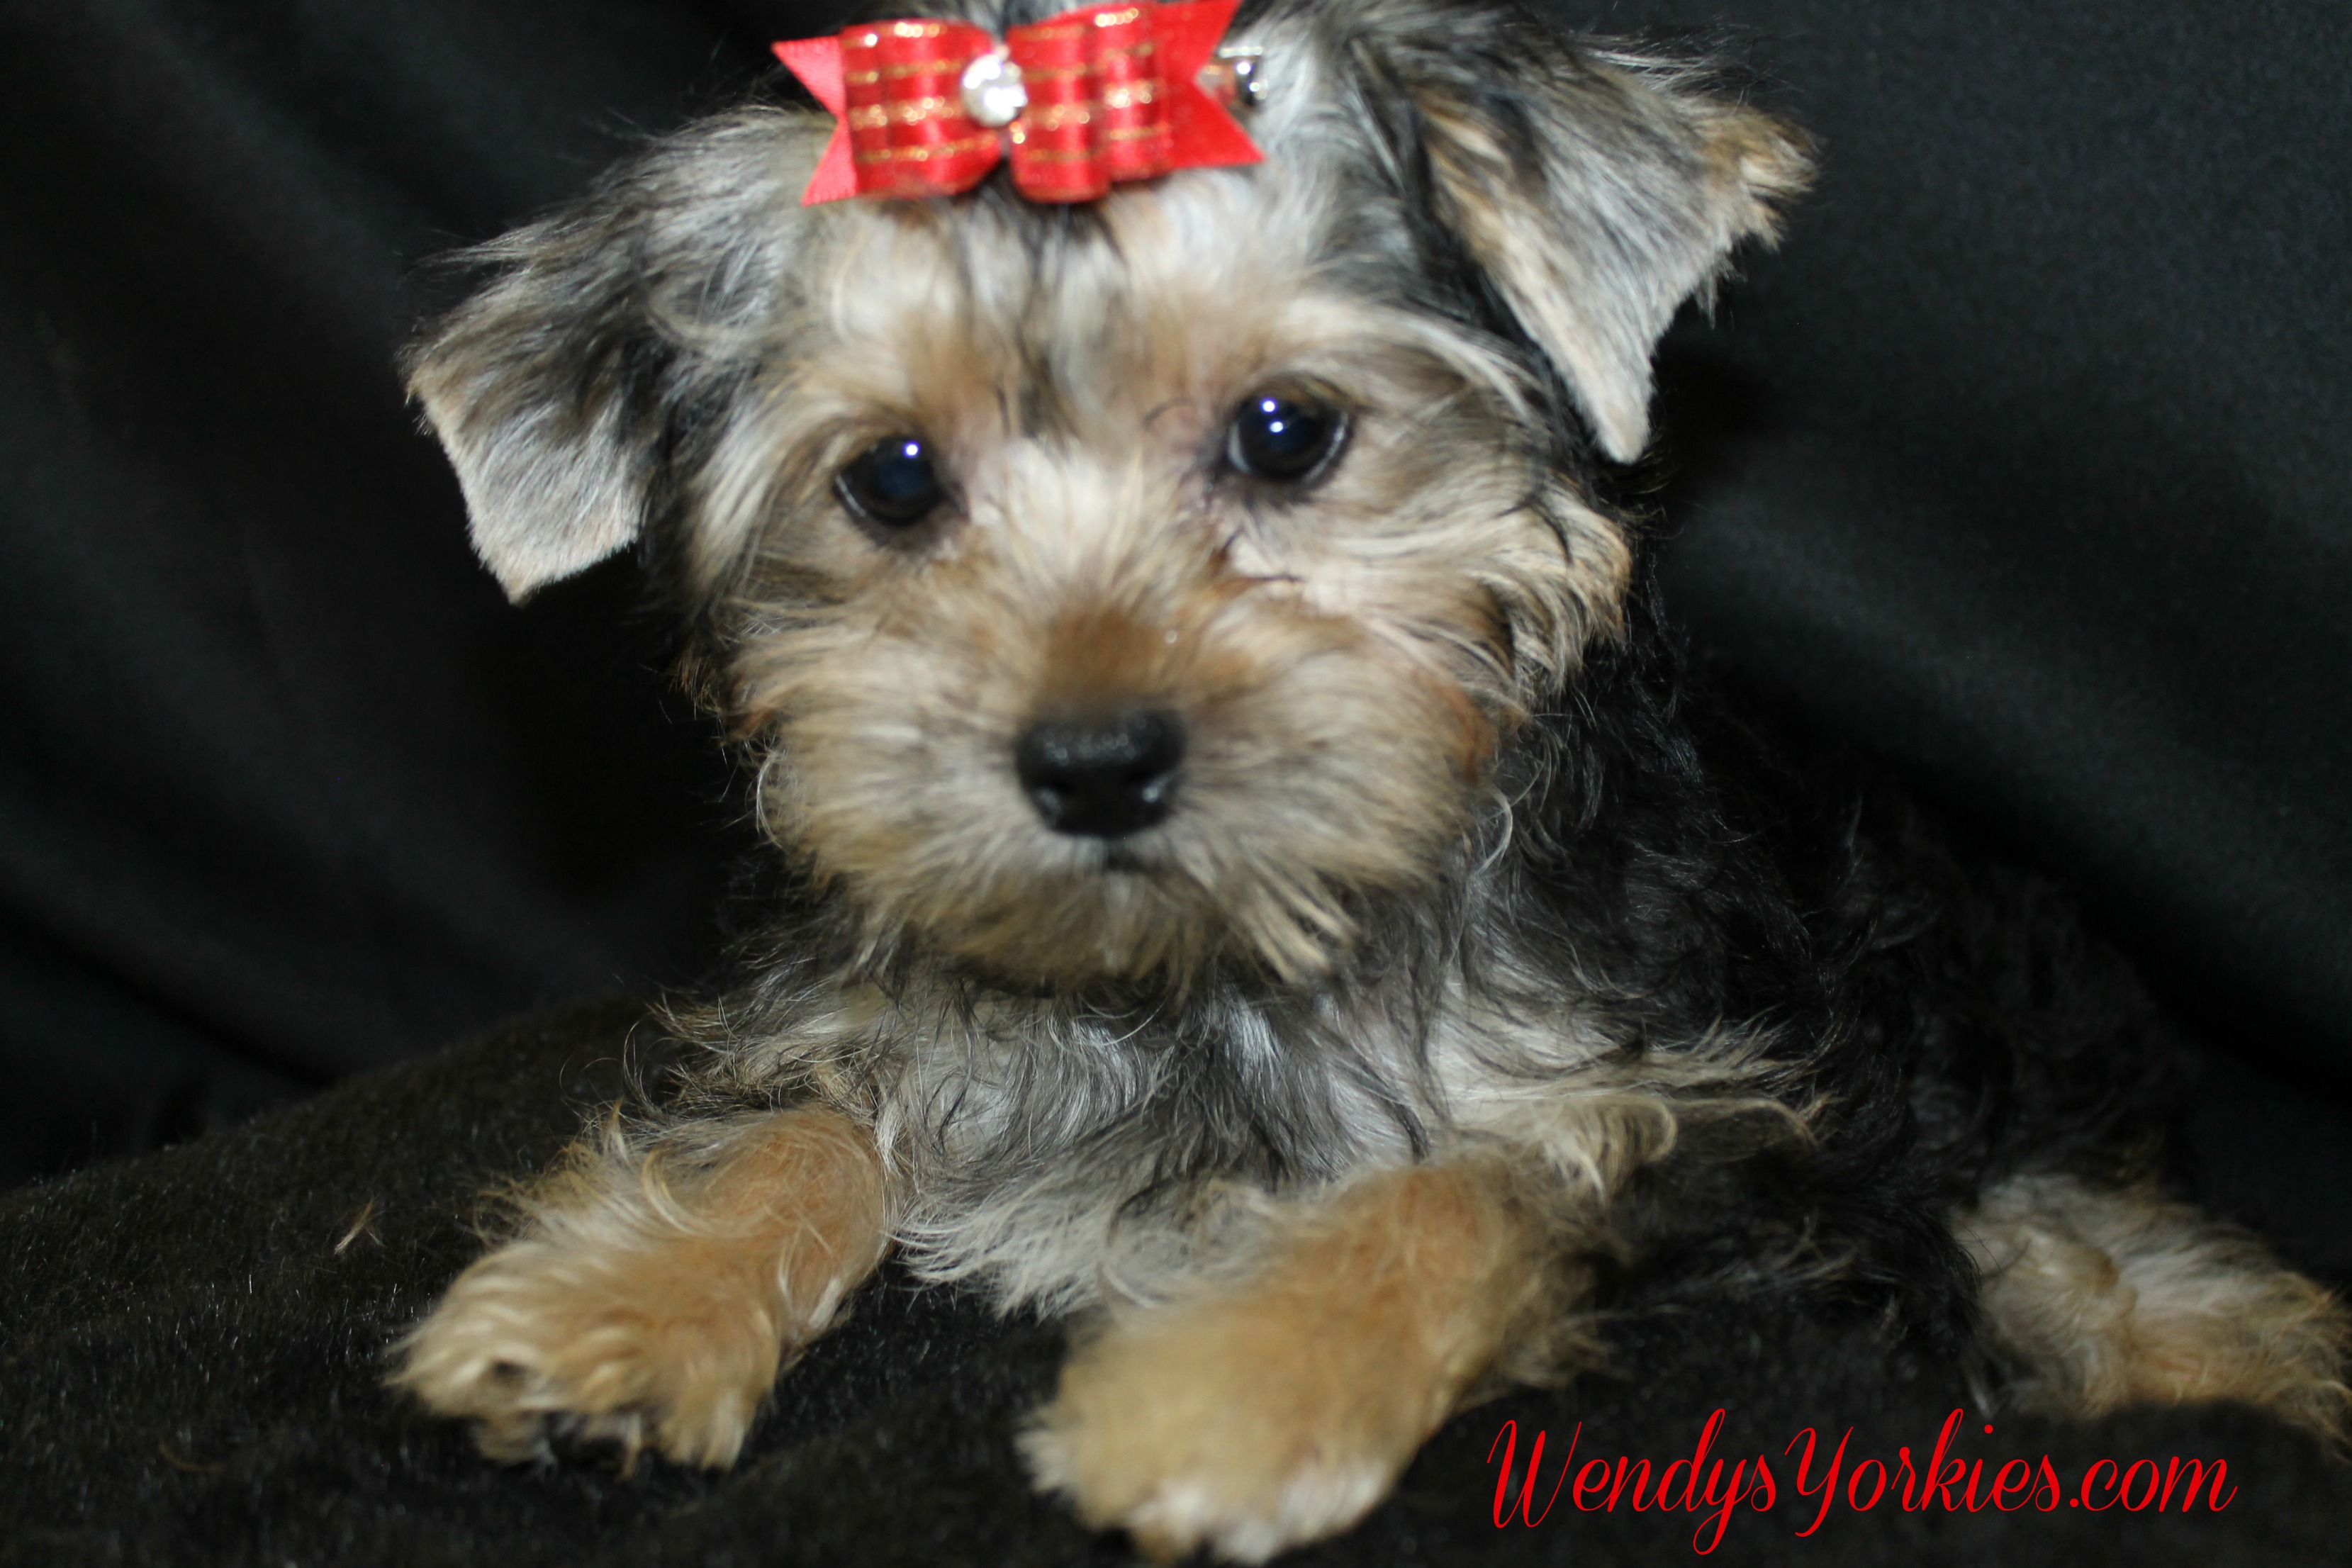 Male Yorkie puppy for sale, Dixon Phoebe